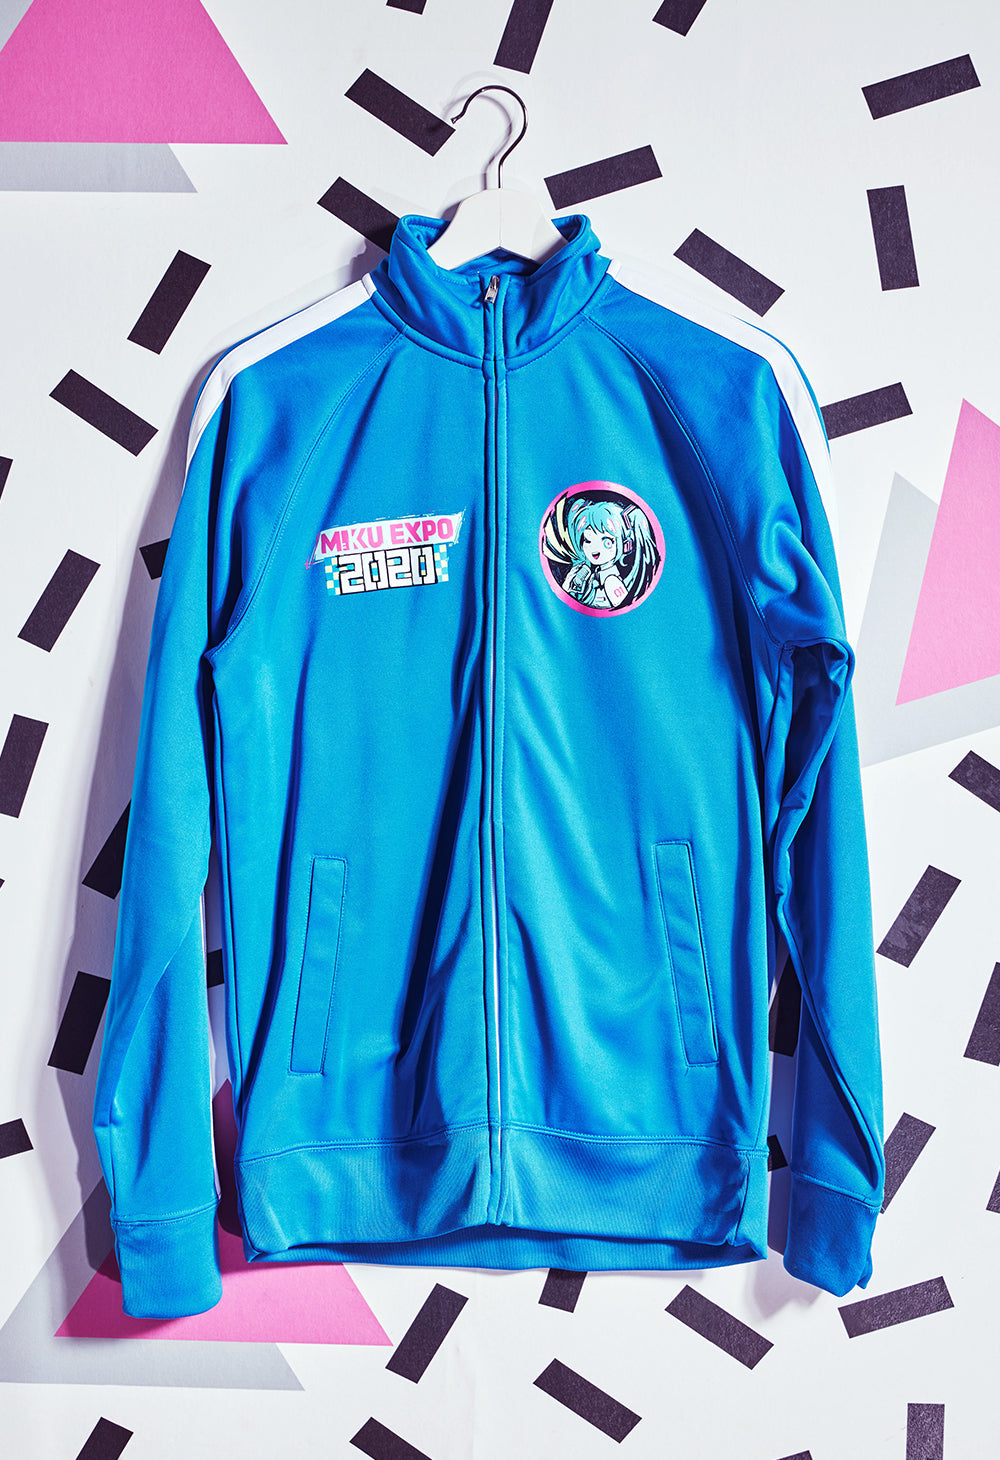 MIKU EXPO 2020 Track Jacket